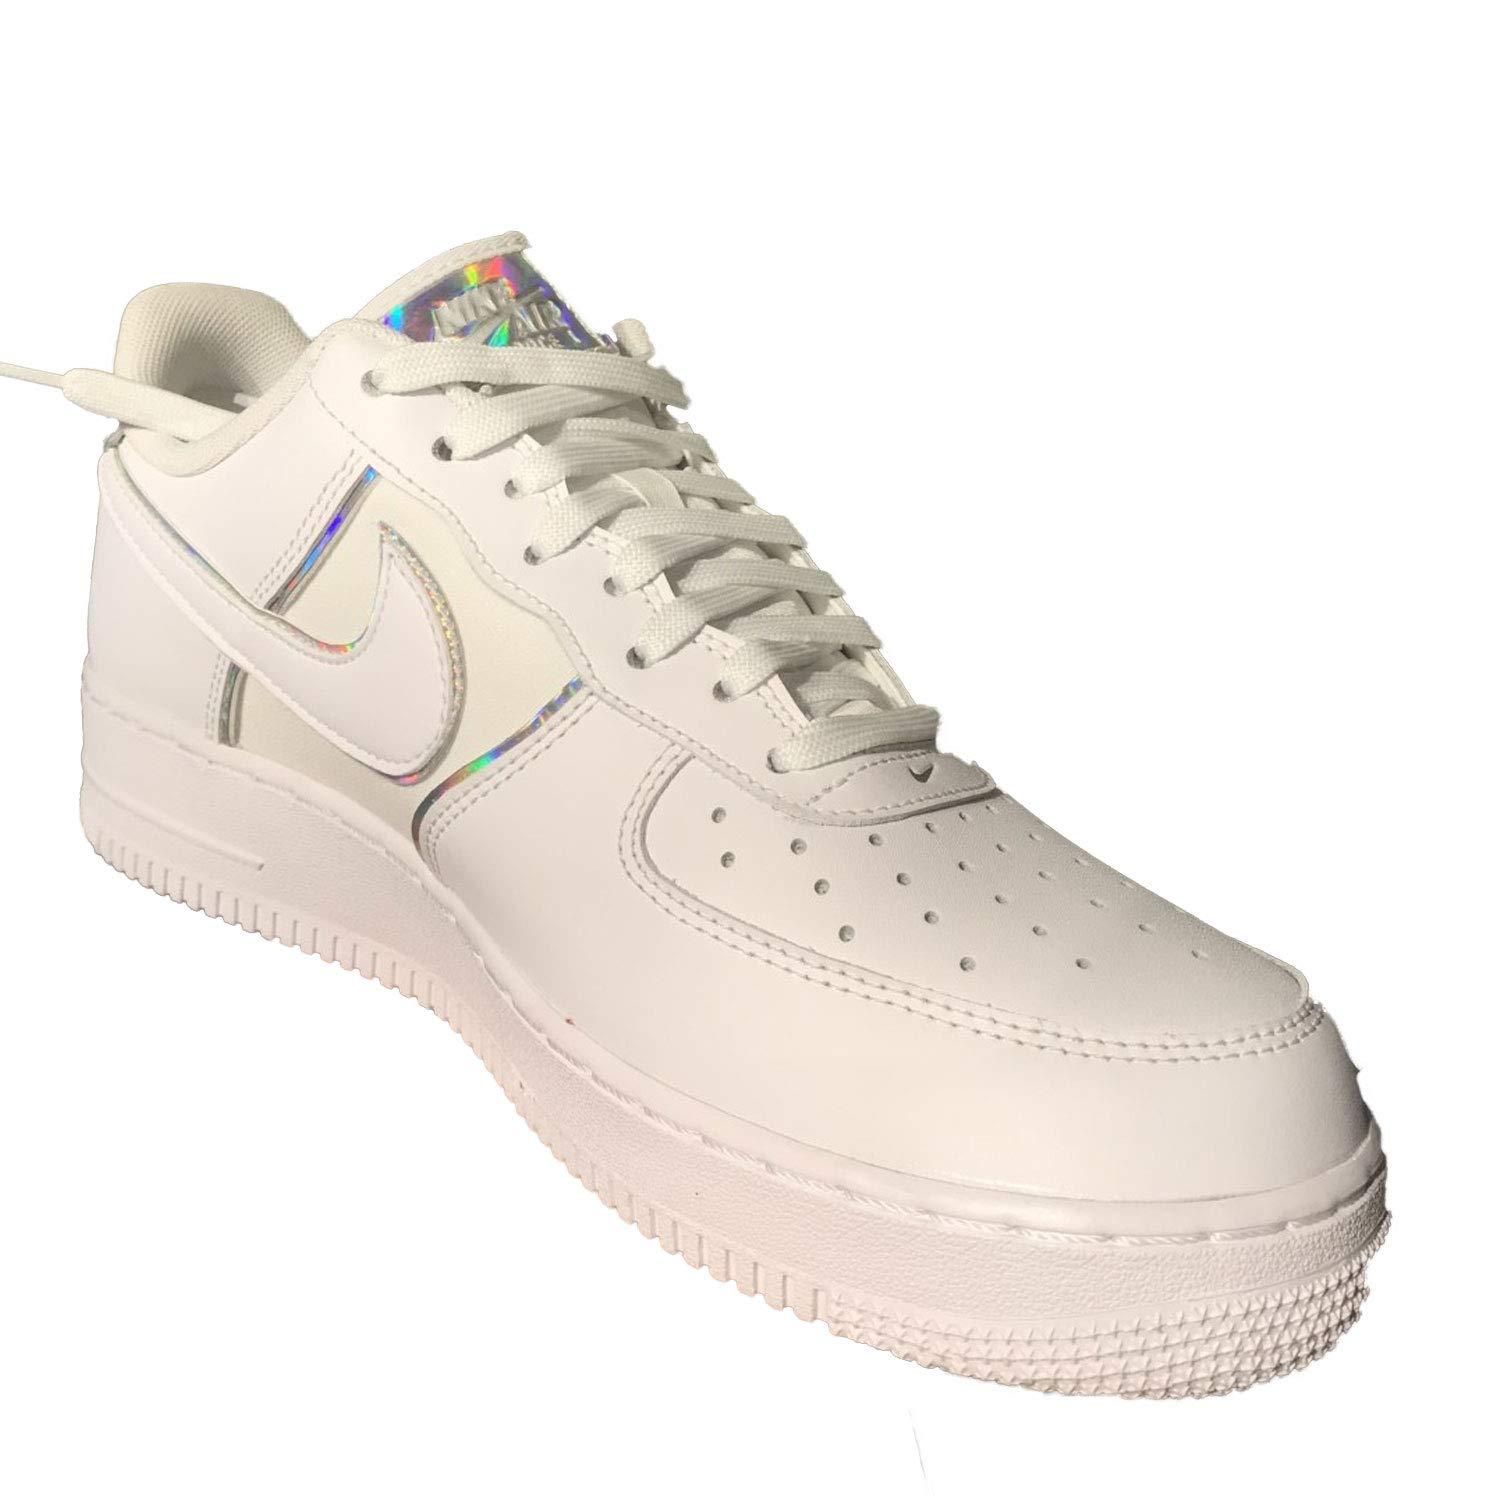 Nike Nike Nike Herren Air Force 1 '07 Lv8 4 Basketballschuhe B00W4ETWIG  225d92